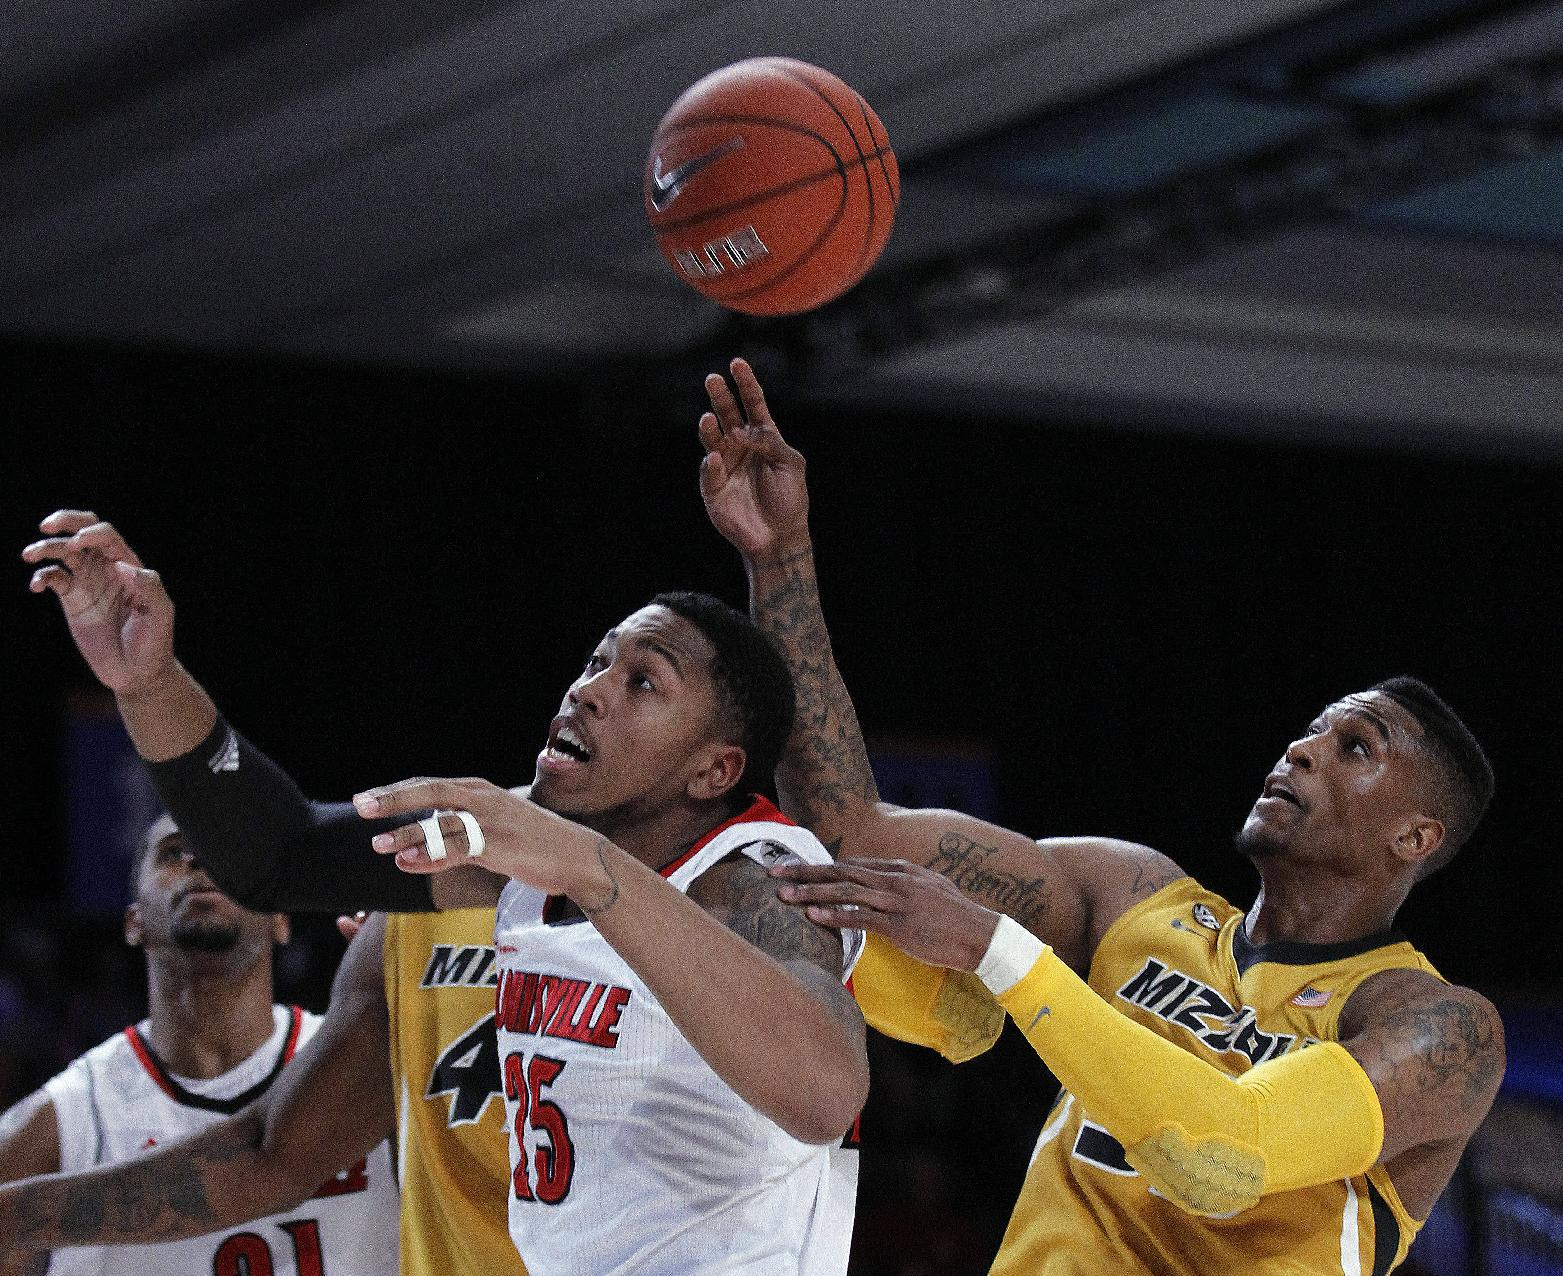 Missouri guard Earnest Ross, right, and Louisville center Zach Price (25) fight for a rebound in the first half of an NCAA college basketball game at the Battle 4 Atlantis tournament on Friday, Nov. 23, 2012, in Paradise Island, Bahamas